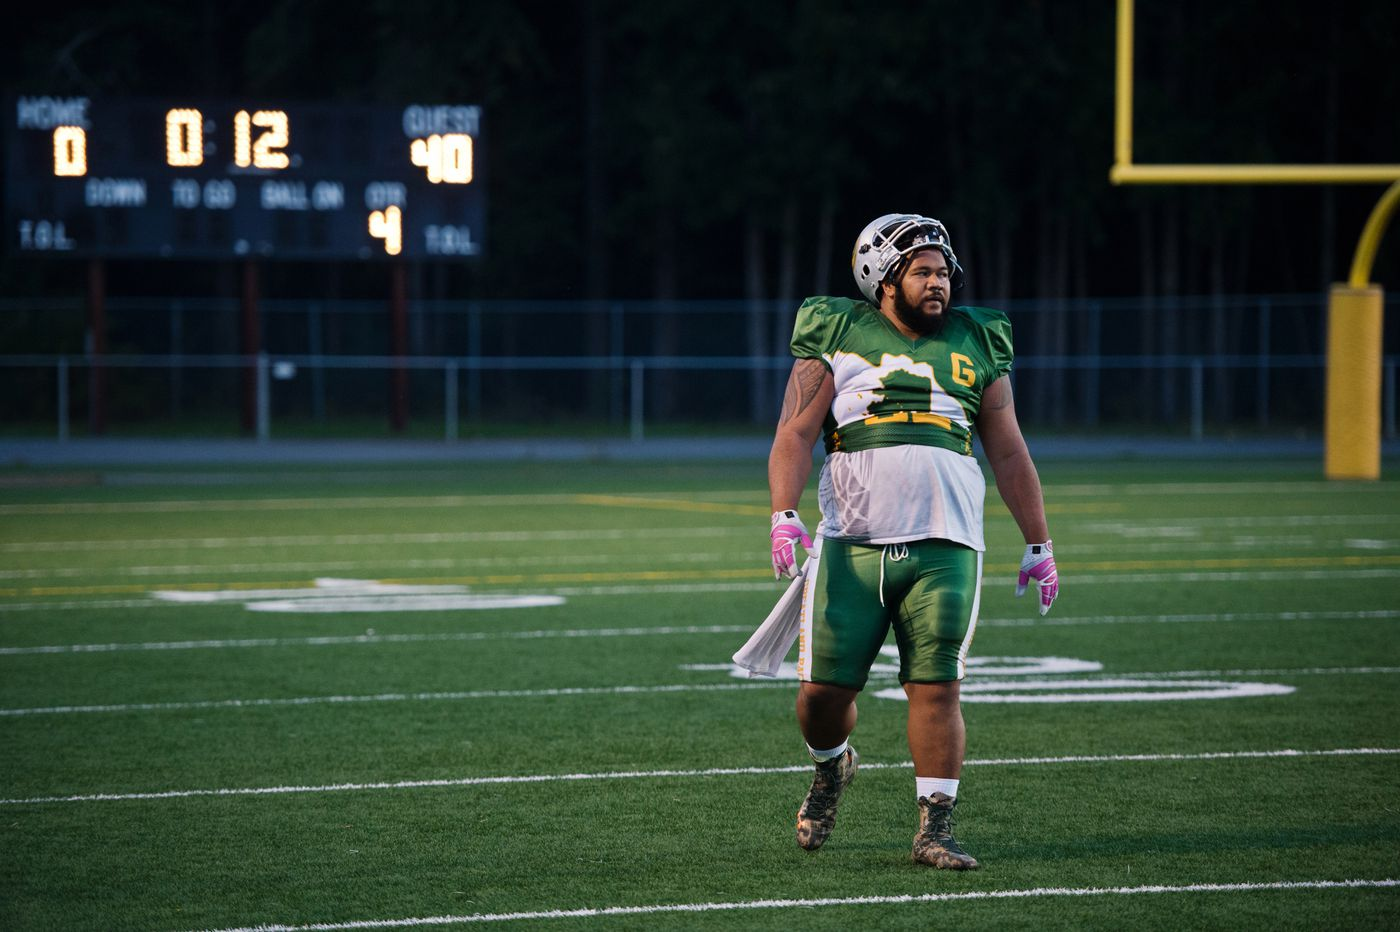 With the game winding down in a lopsided loss against the Anchorage Cowboys, King Matavao of the Greatland Packers heads to the sidelines on Sept. 3, 2018. (Marc Lester / ADN)